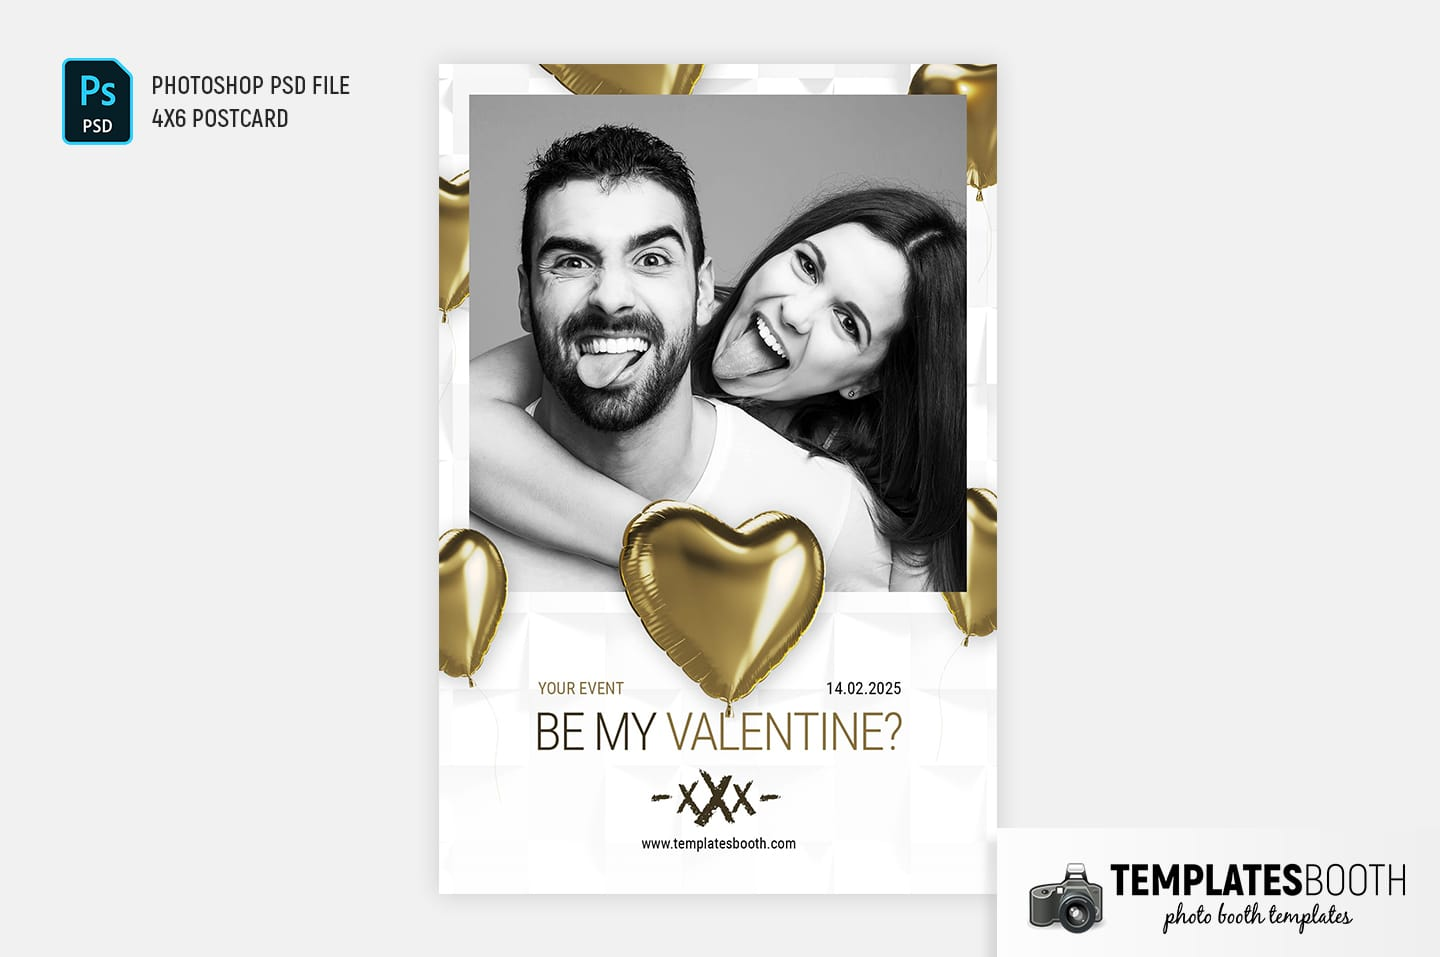 Be My Valentine Photo Booth Template (4x6 portrait)